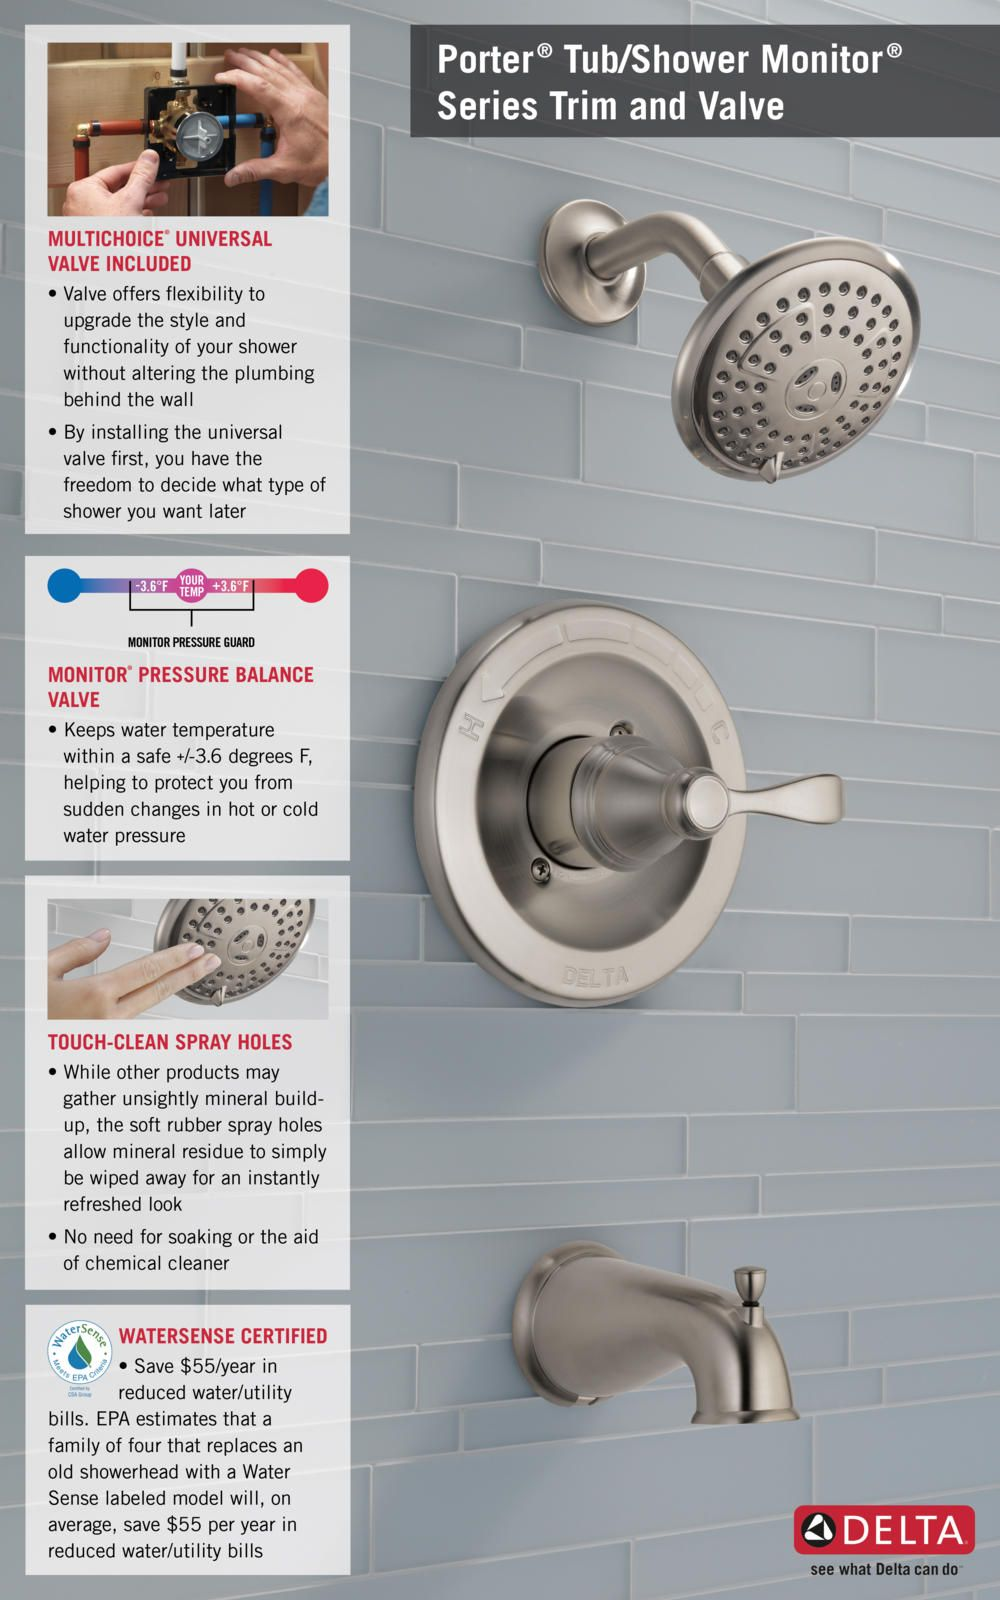 Home Depot Faucet 144984 Bn A T14 Shower With Valve Infographic